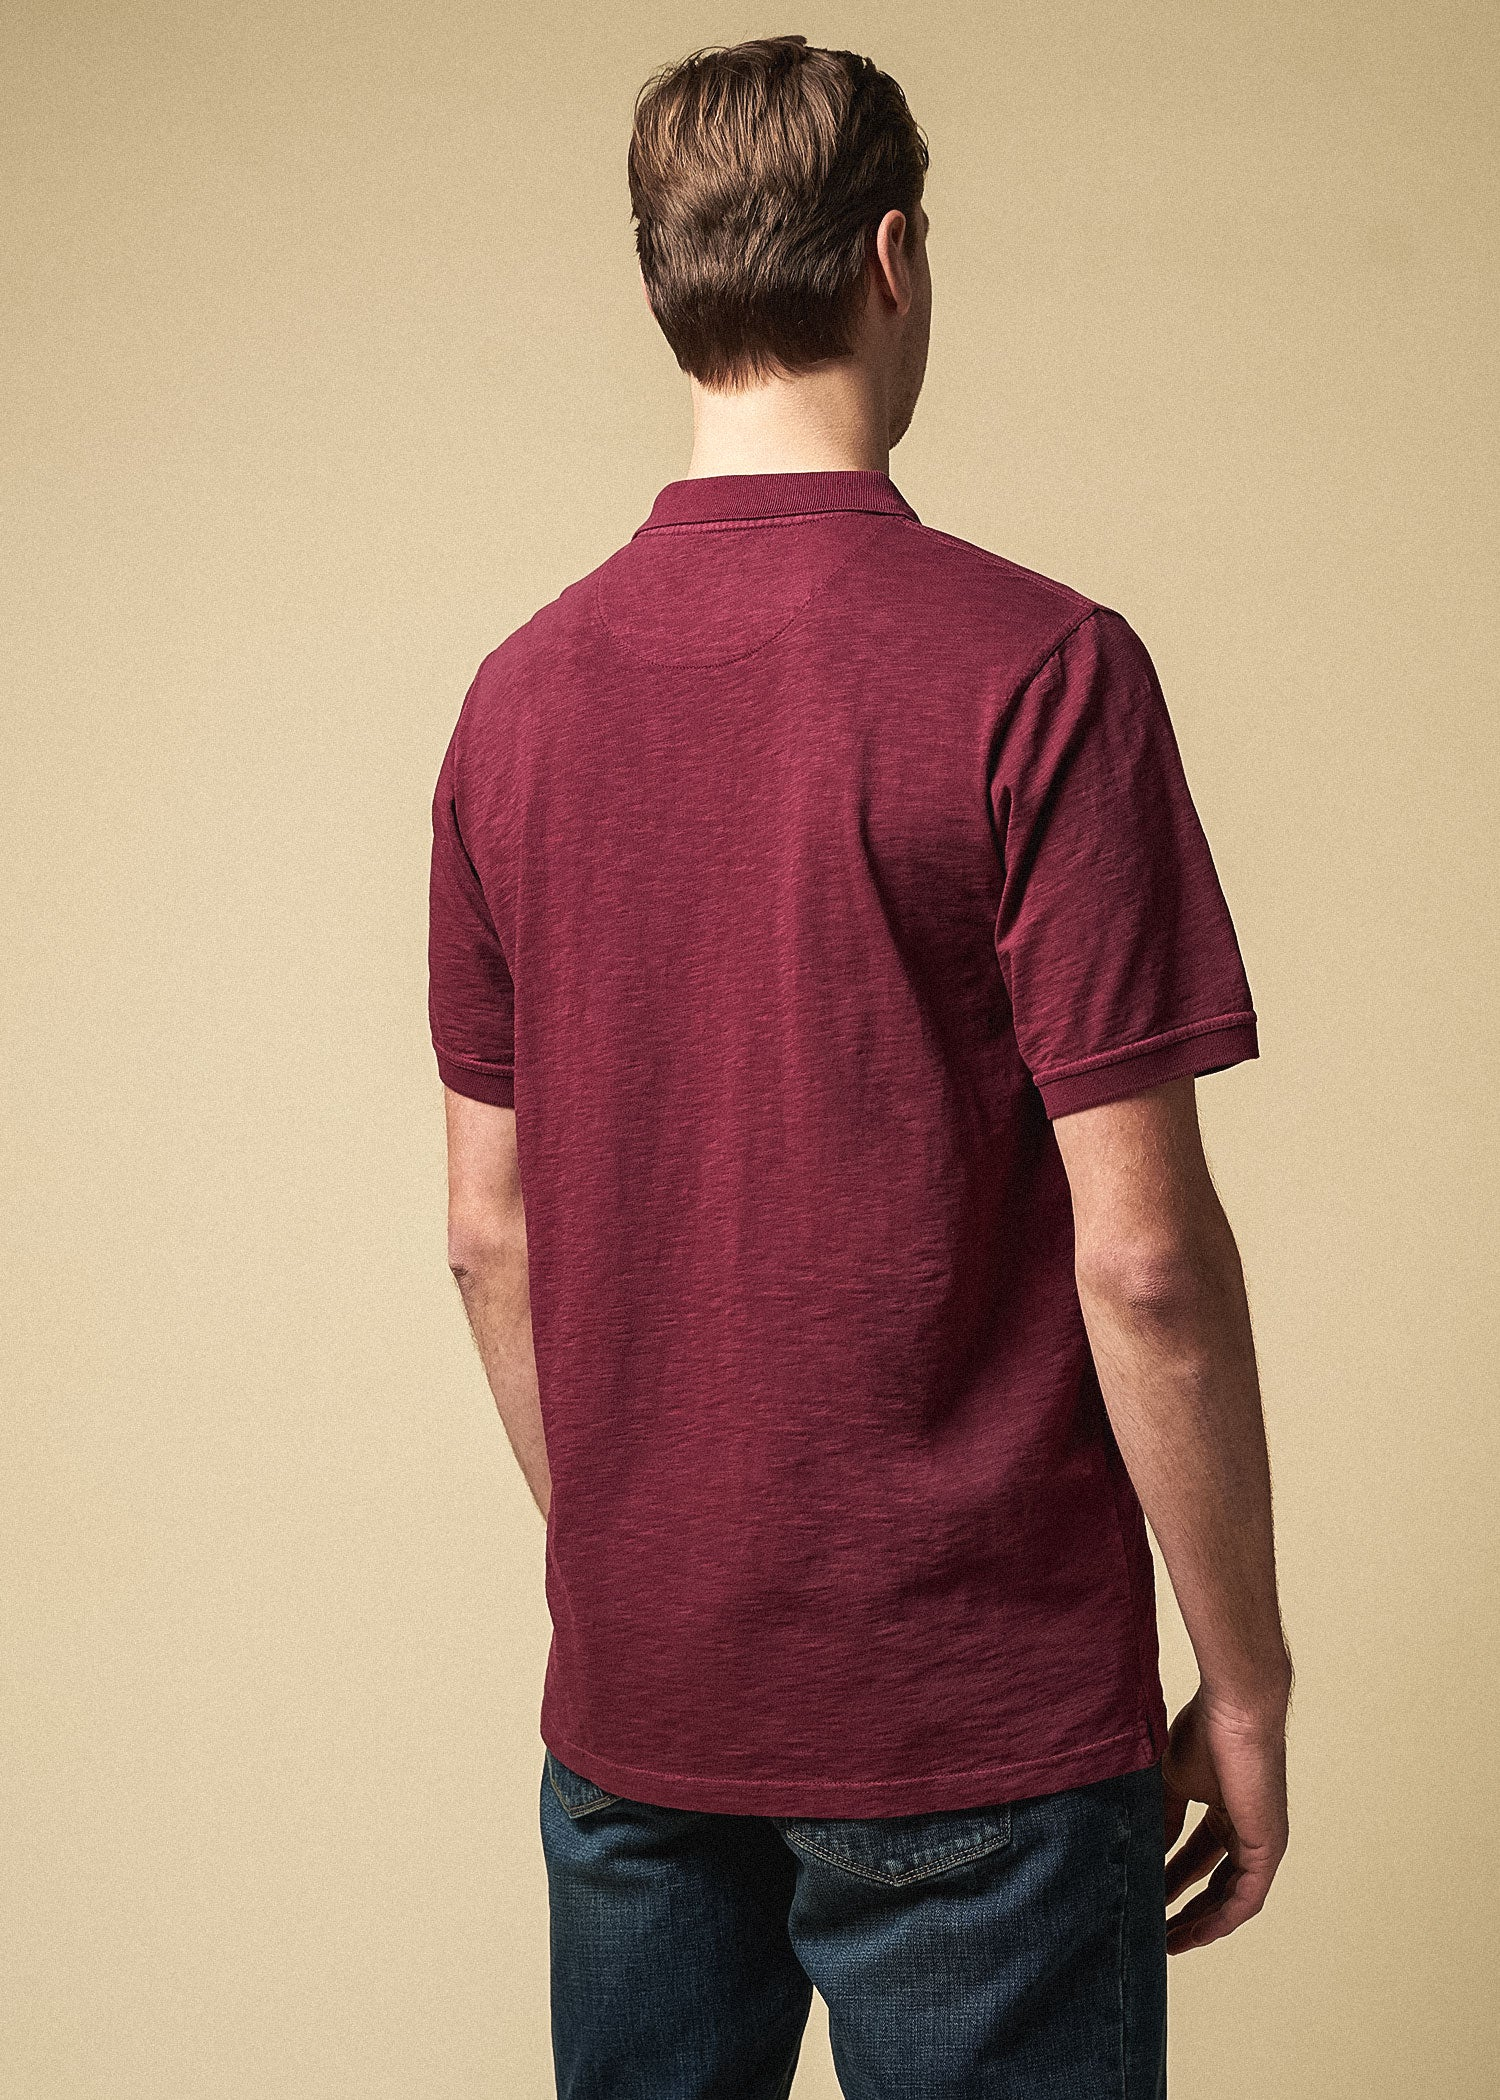 tall_mens_slub_pocket_polo_vintage_sumacred-back